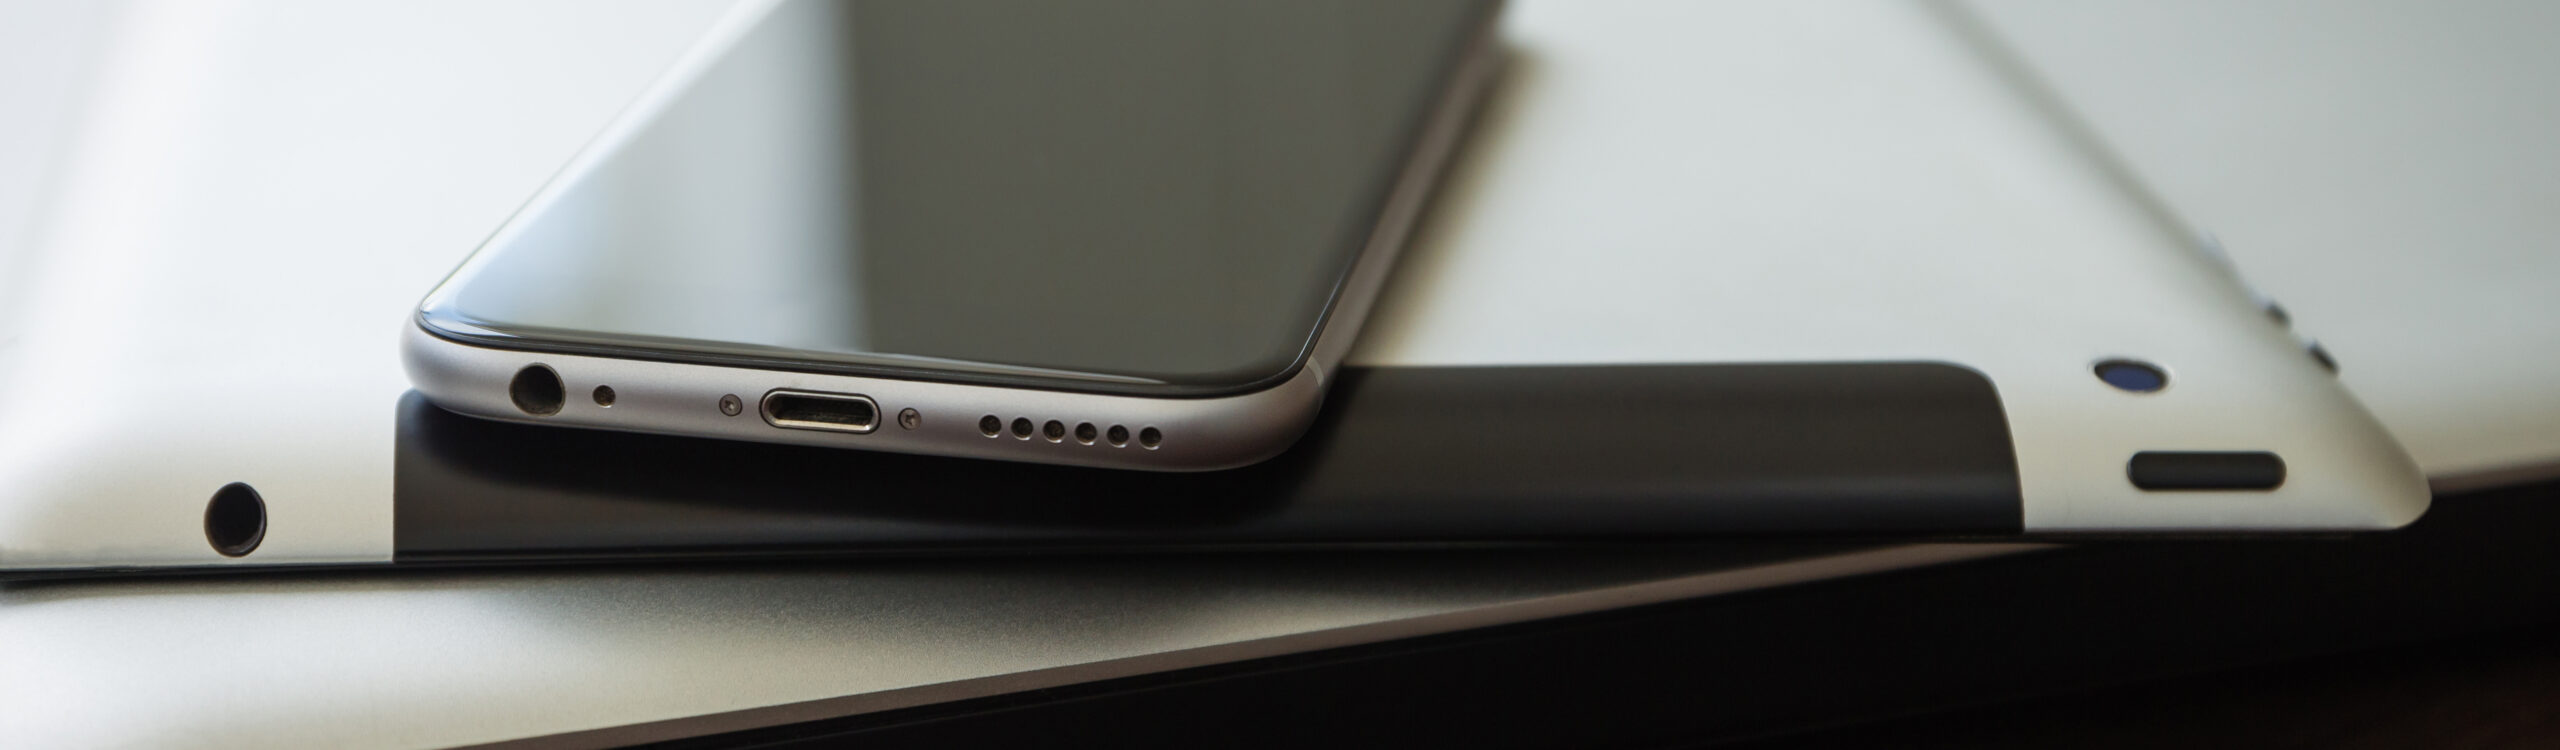 close up phone on tablet and laptop, new technology concept